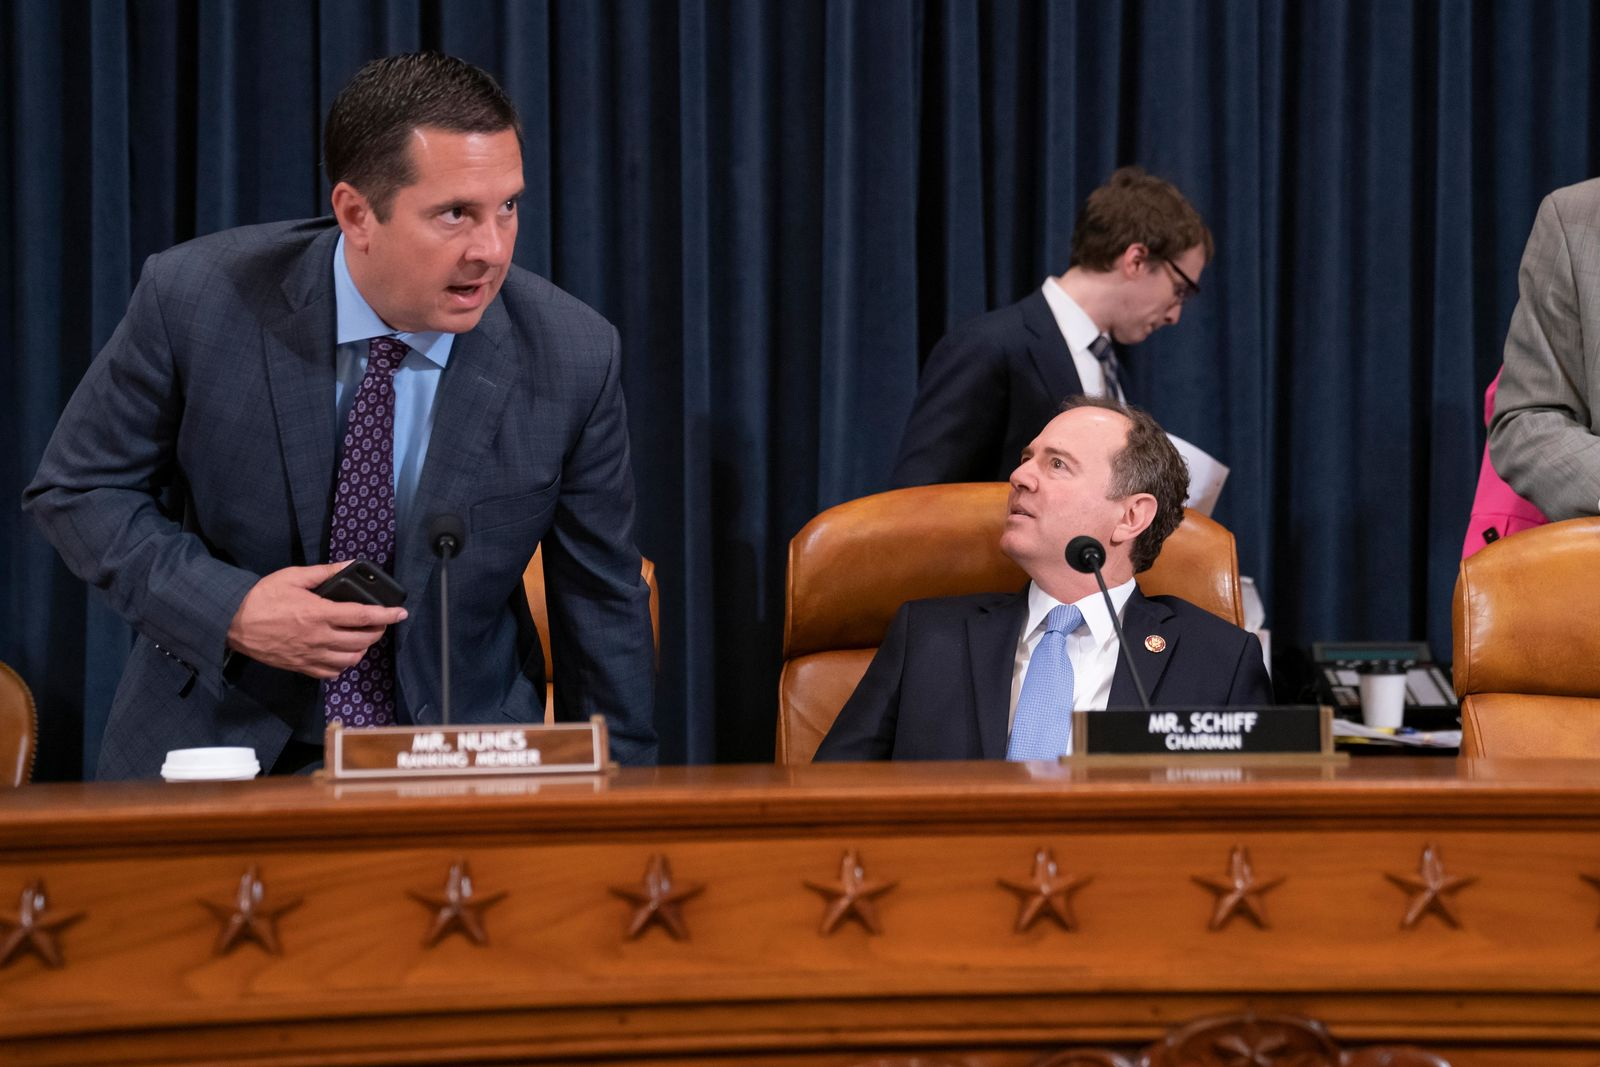 Rep. Devin Nunes, R-Calif, the ranking member on the House Intelligence Committee, left, takes his seat beside Chairman Adam Schiff, D-Calif., as they open a hearing on politically motivated fake videos and manipulated media, on Capitol Hill in Washington, Thursday, June 13, 2019.(AP Photo/J. Scott Applewhite)